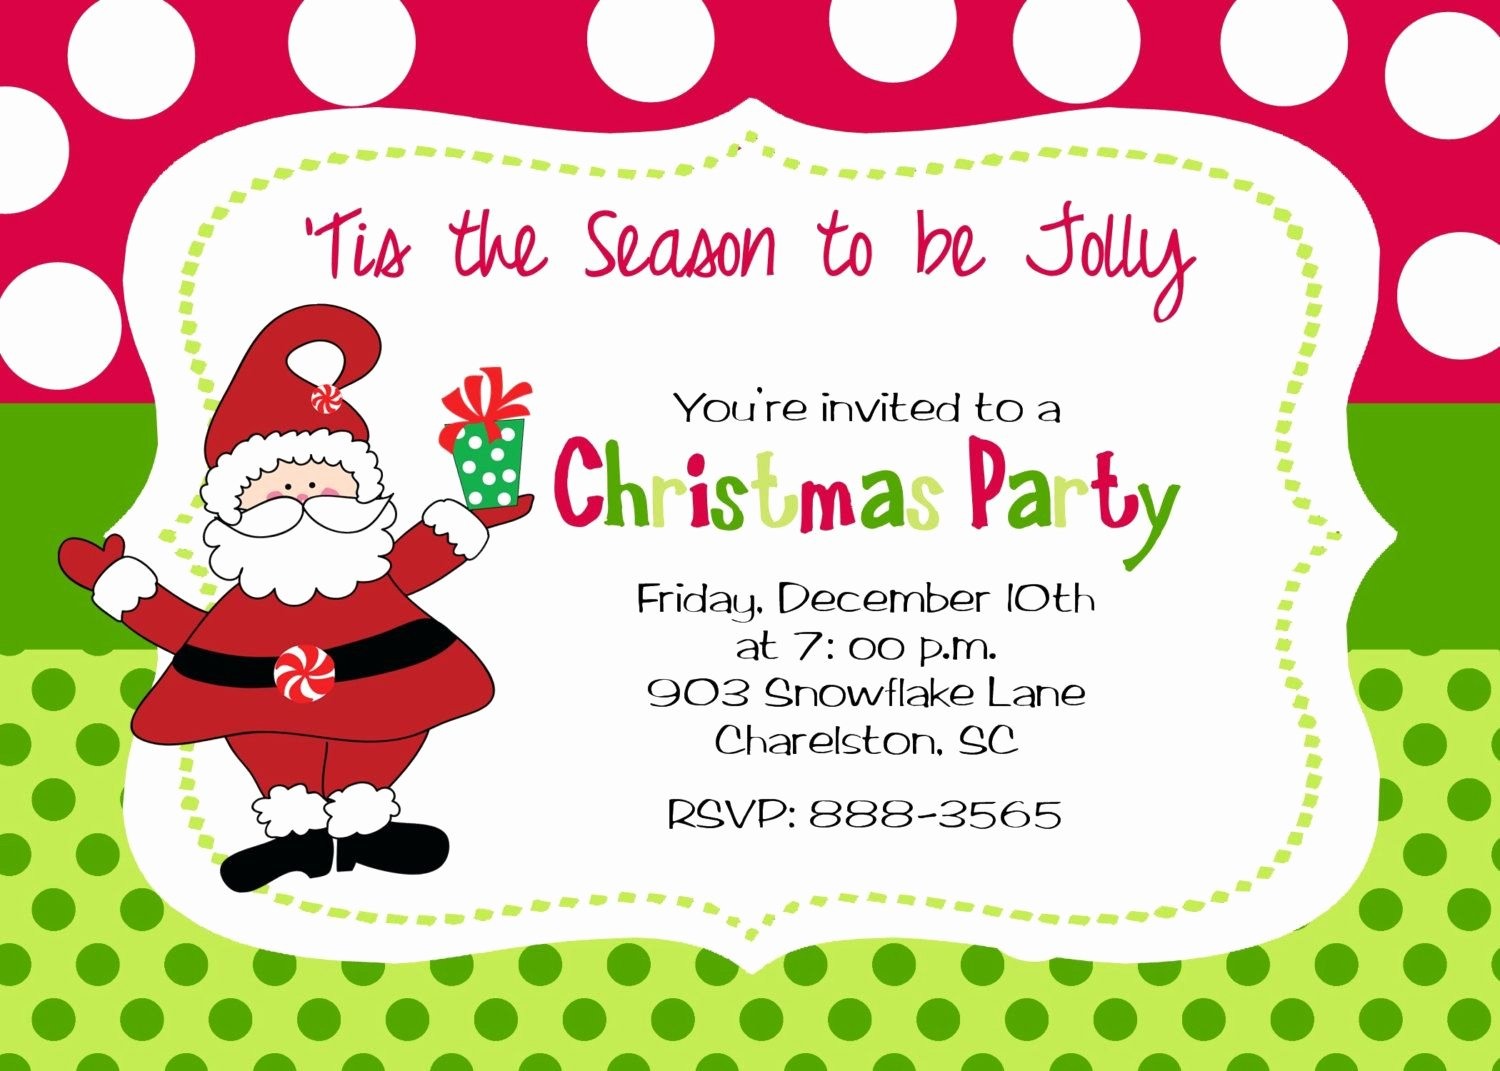 Office Christmas Party Invitation Template Beautiful Christmas Party Invitation by Stickerchic Etsy